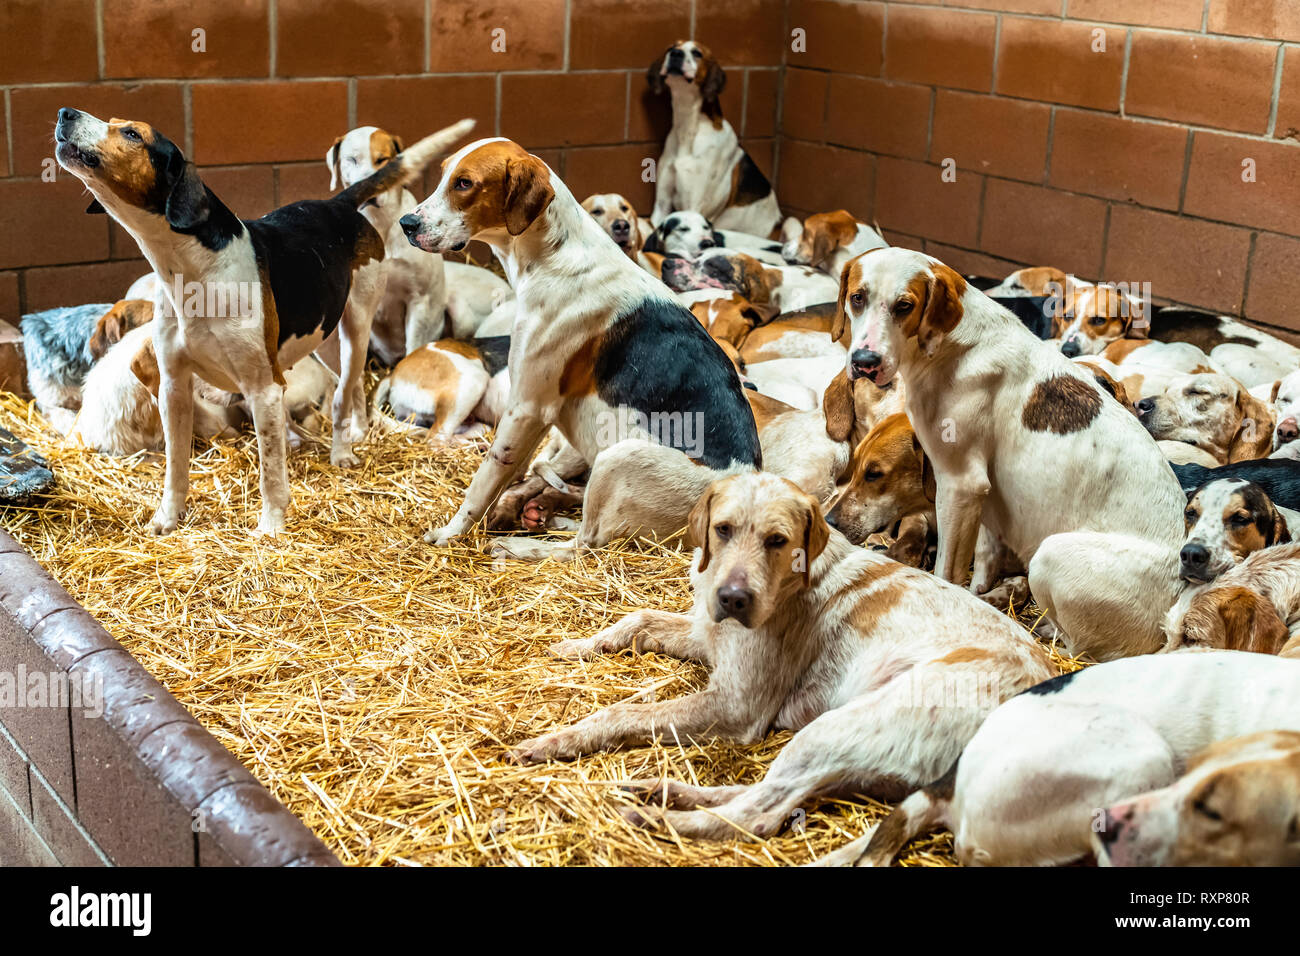 Eildon, Melrose, Scottish Borders, UK. 5th March 2019. Foxhounds of the Duke of Buccleuch Hunt enjoy a day off in their kennels near the Eildon Hills. - Stock Image